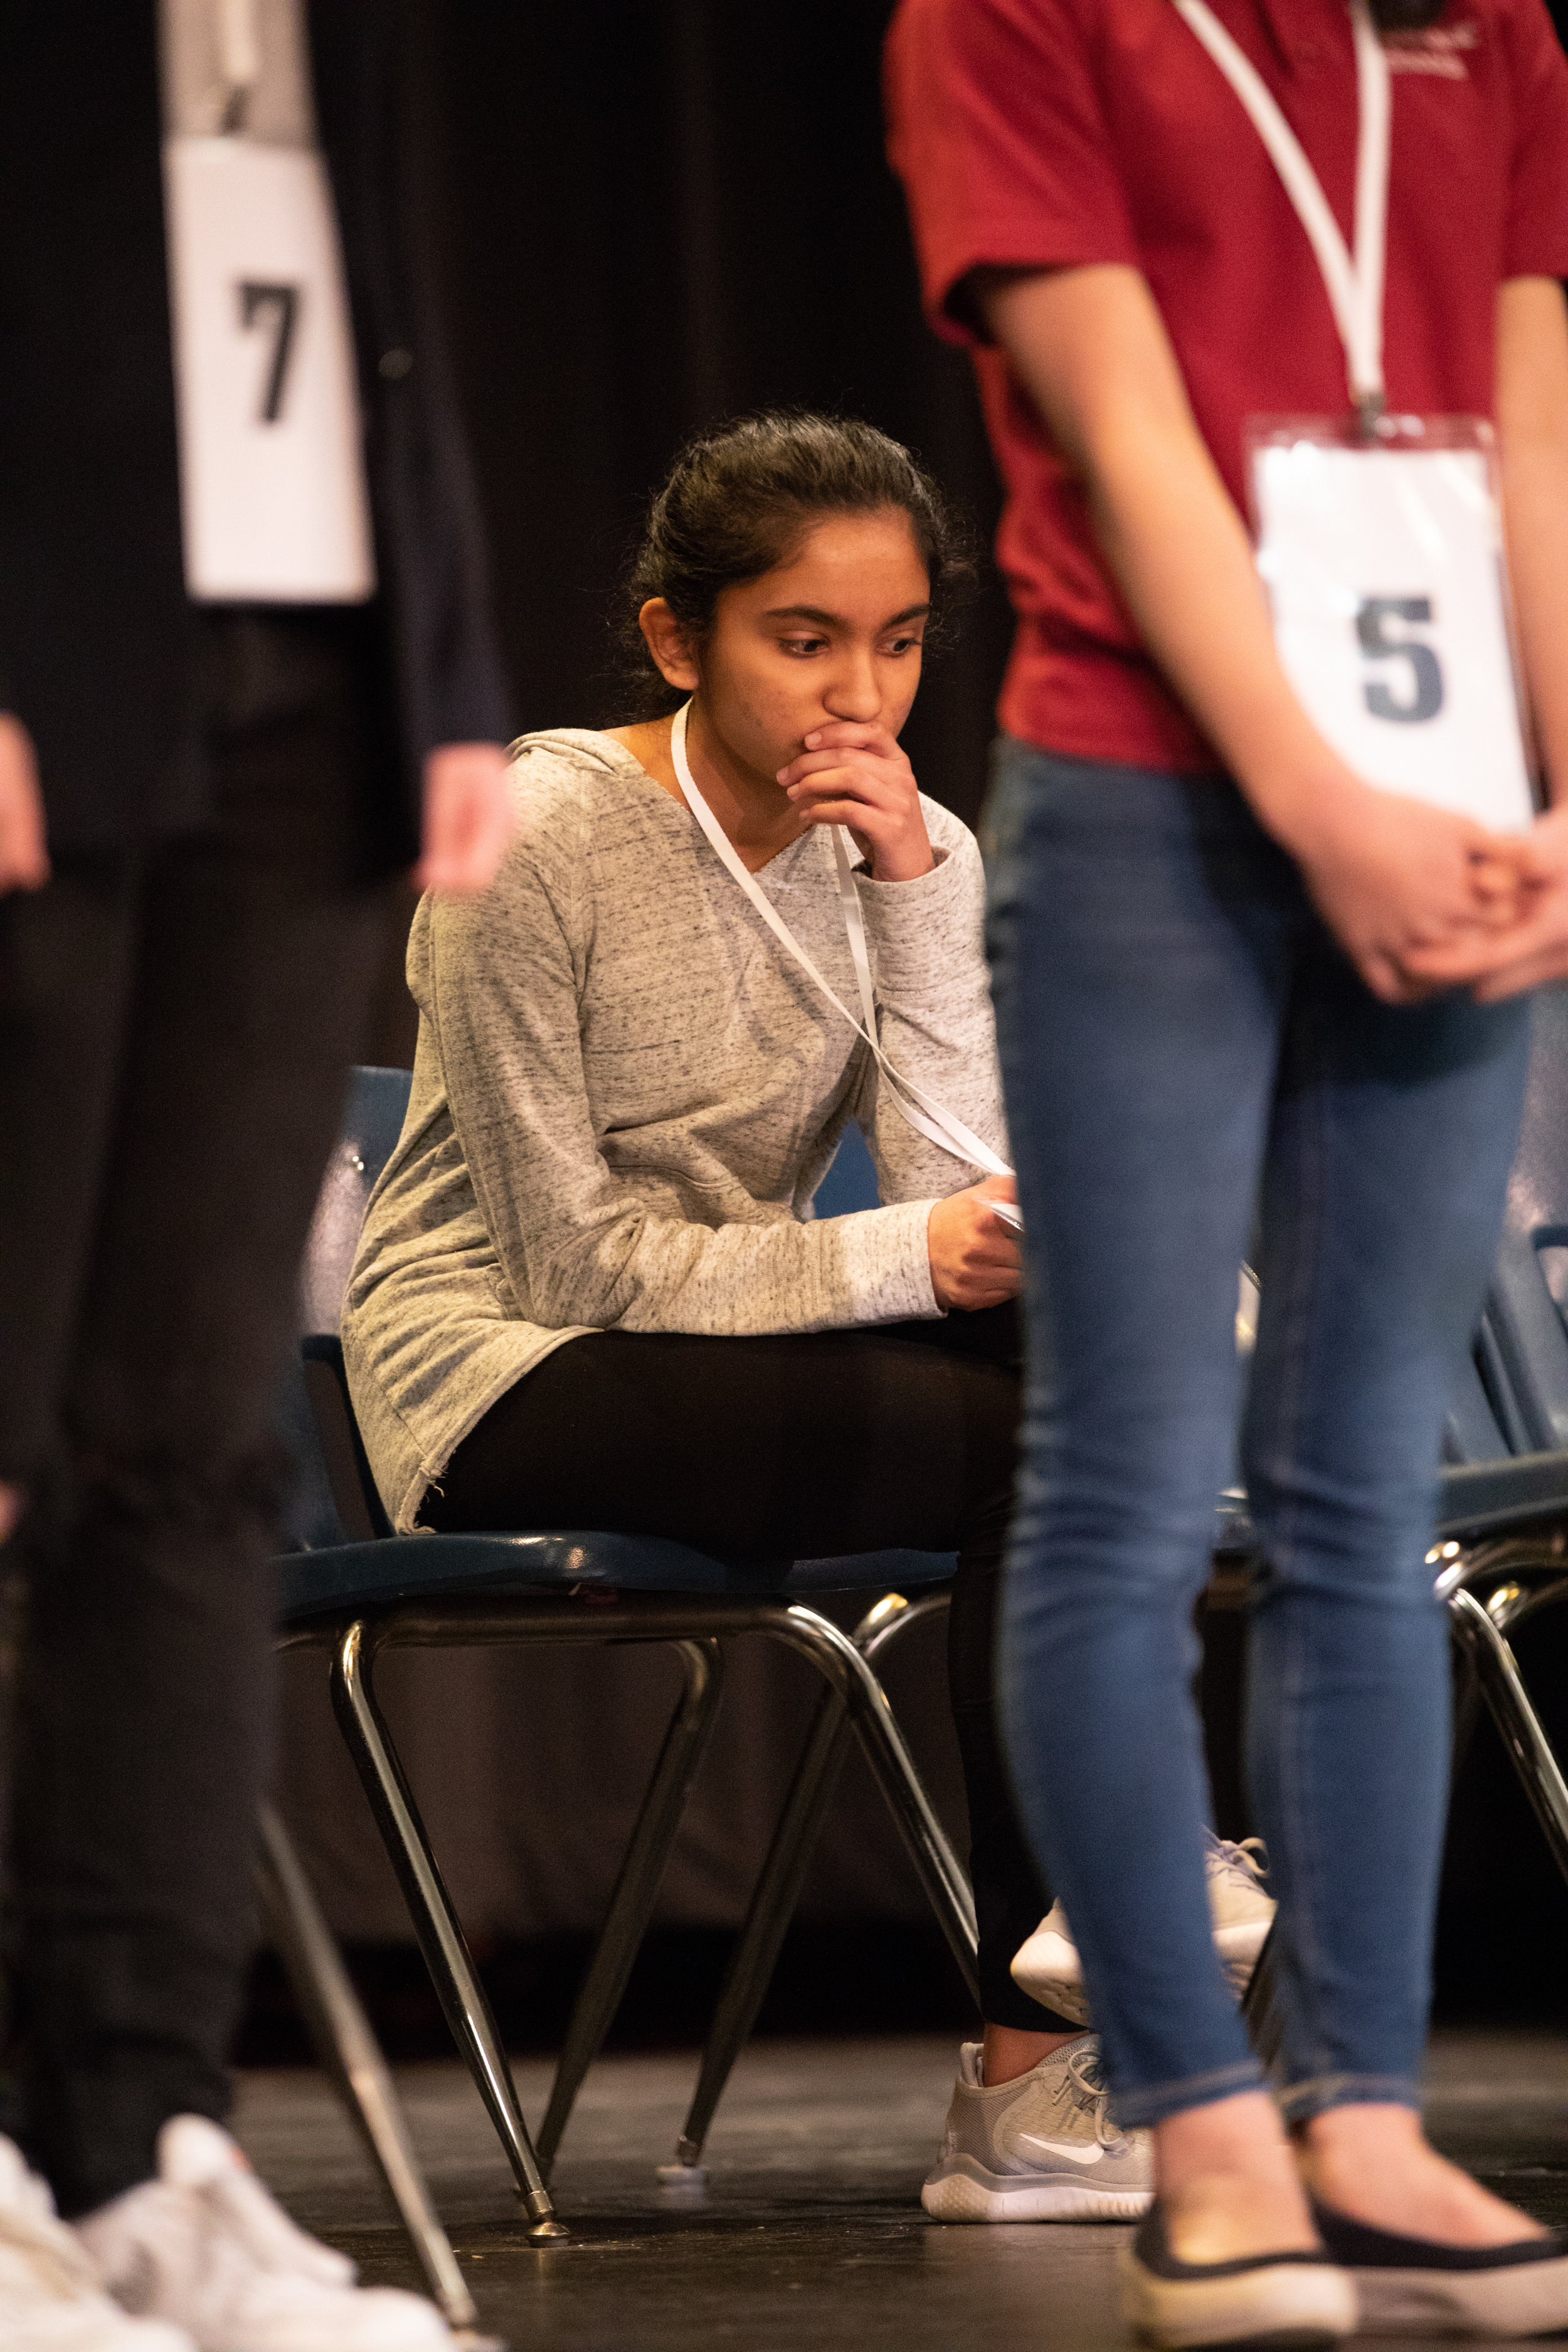 Nikitha Prabhu of James River Day School waits anxiously for her turn during one of the last rounds of the Lynchburg Regional Spelling Bee on March 9, 2019 at Dunbar Middle School for Innovation.